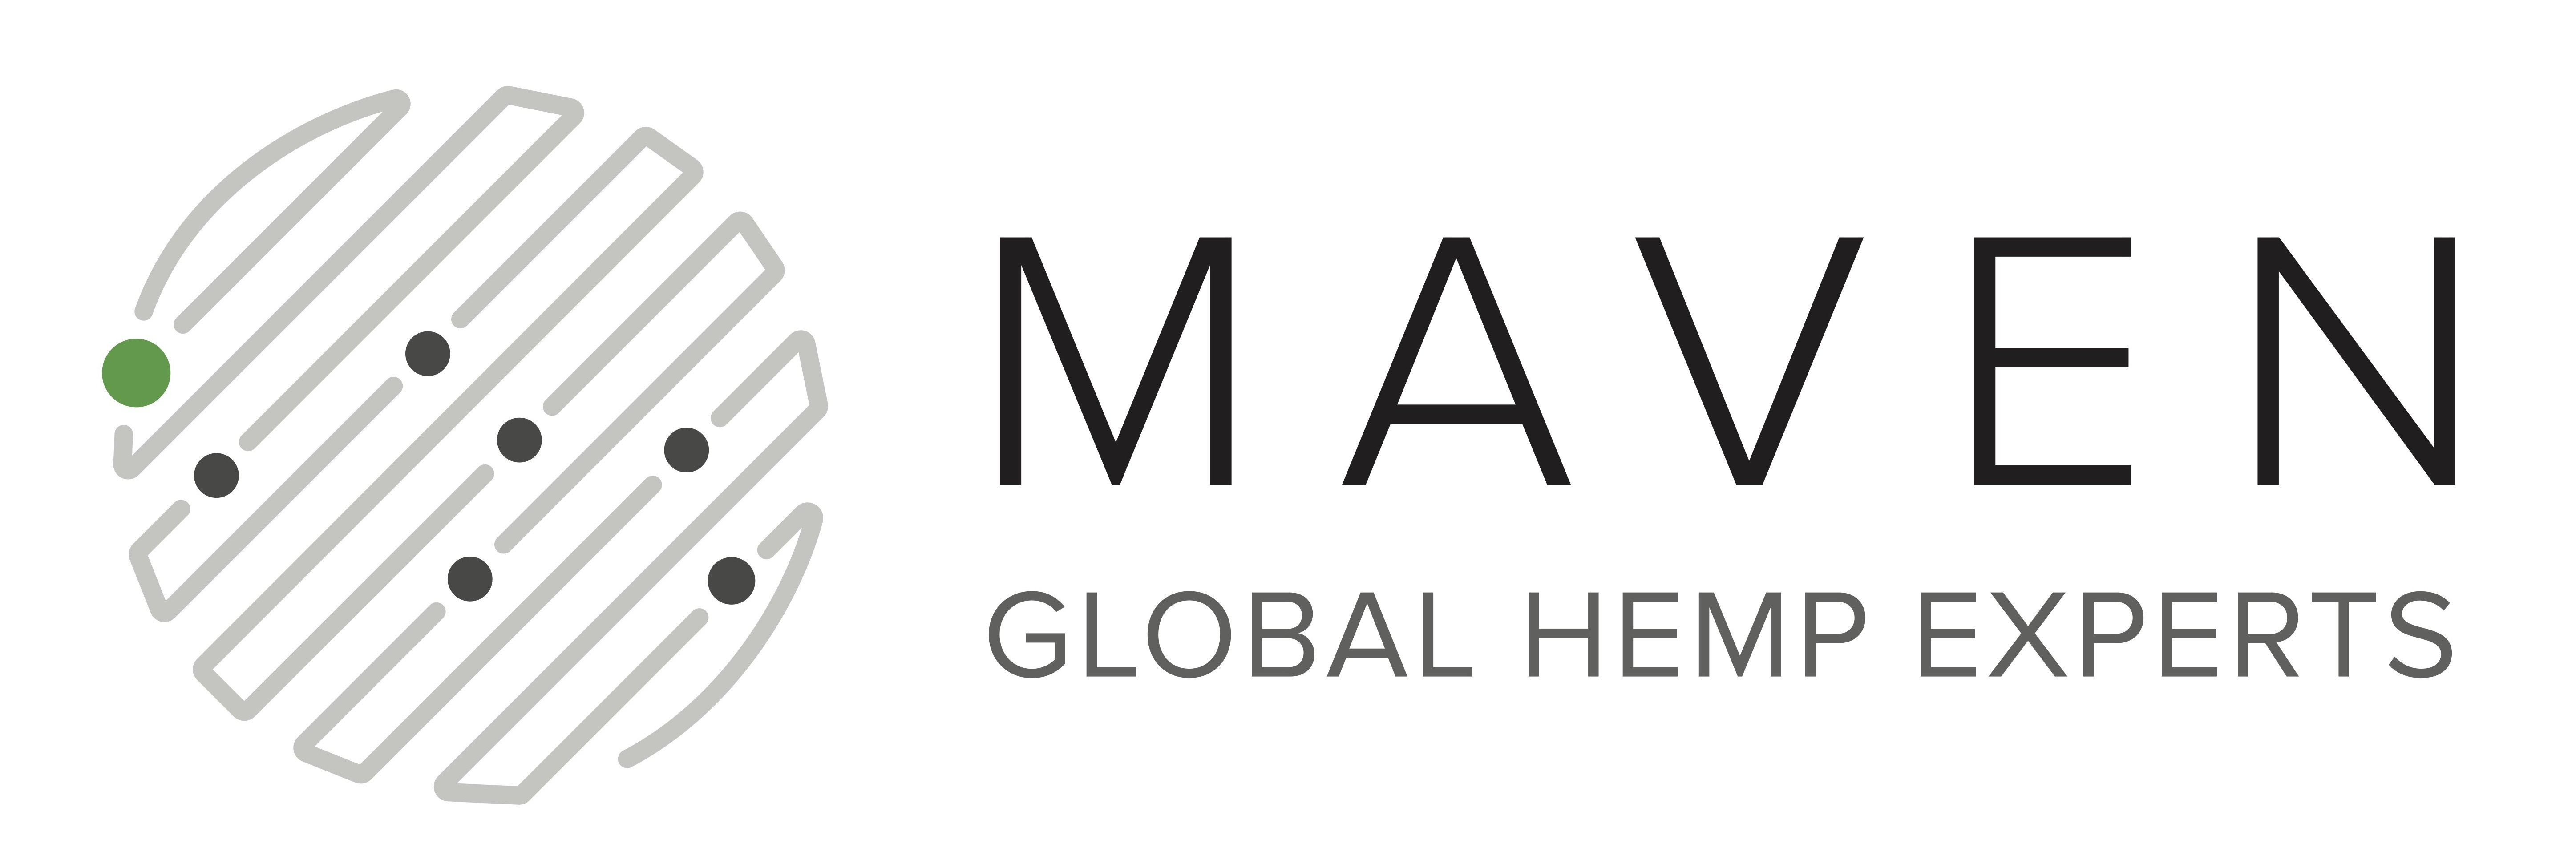 Maven, Global Hemp Experts